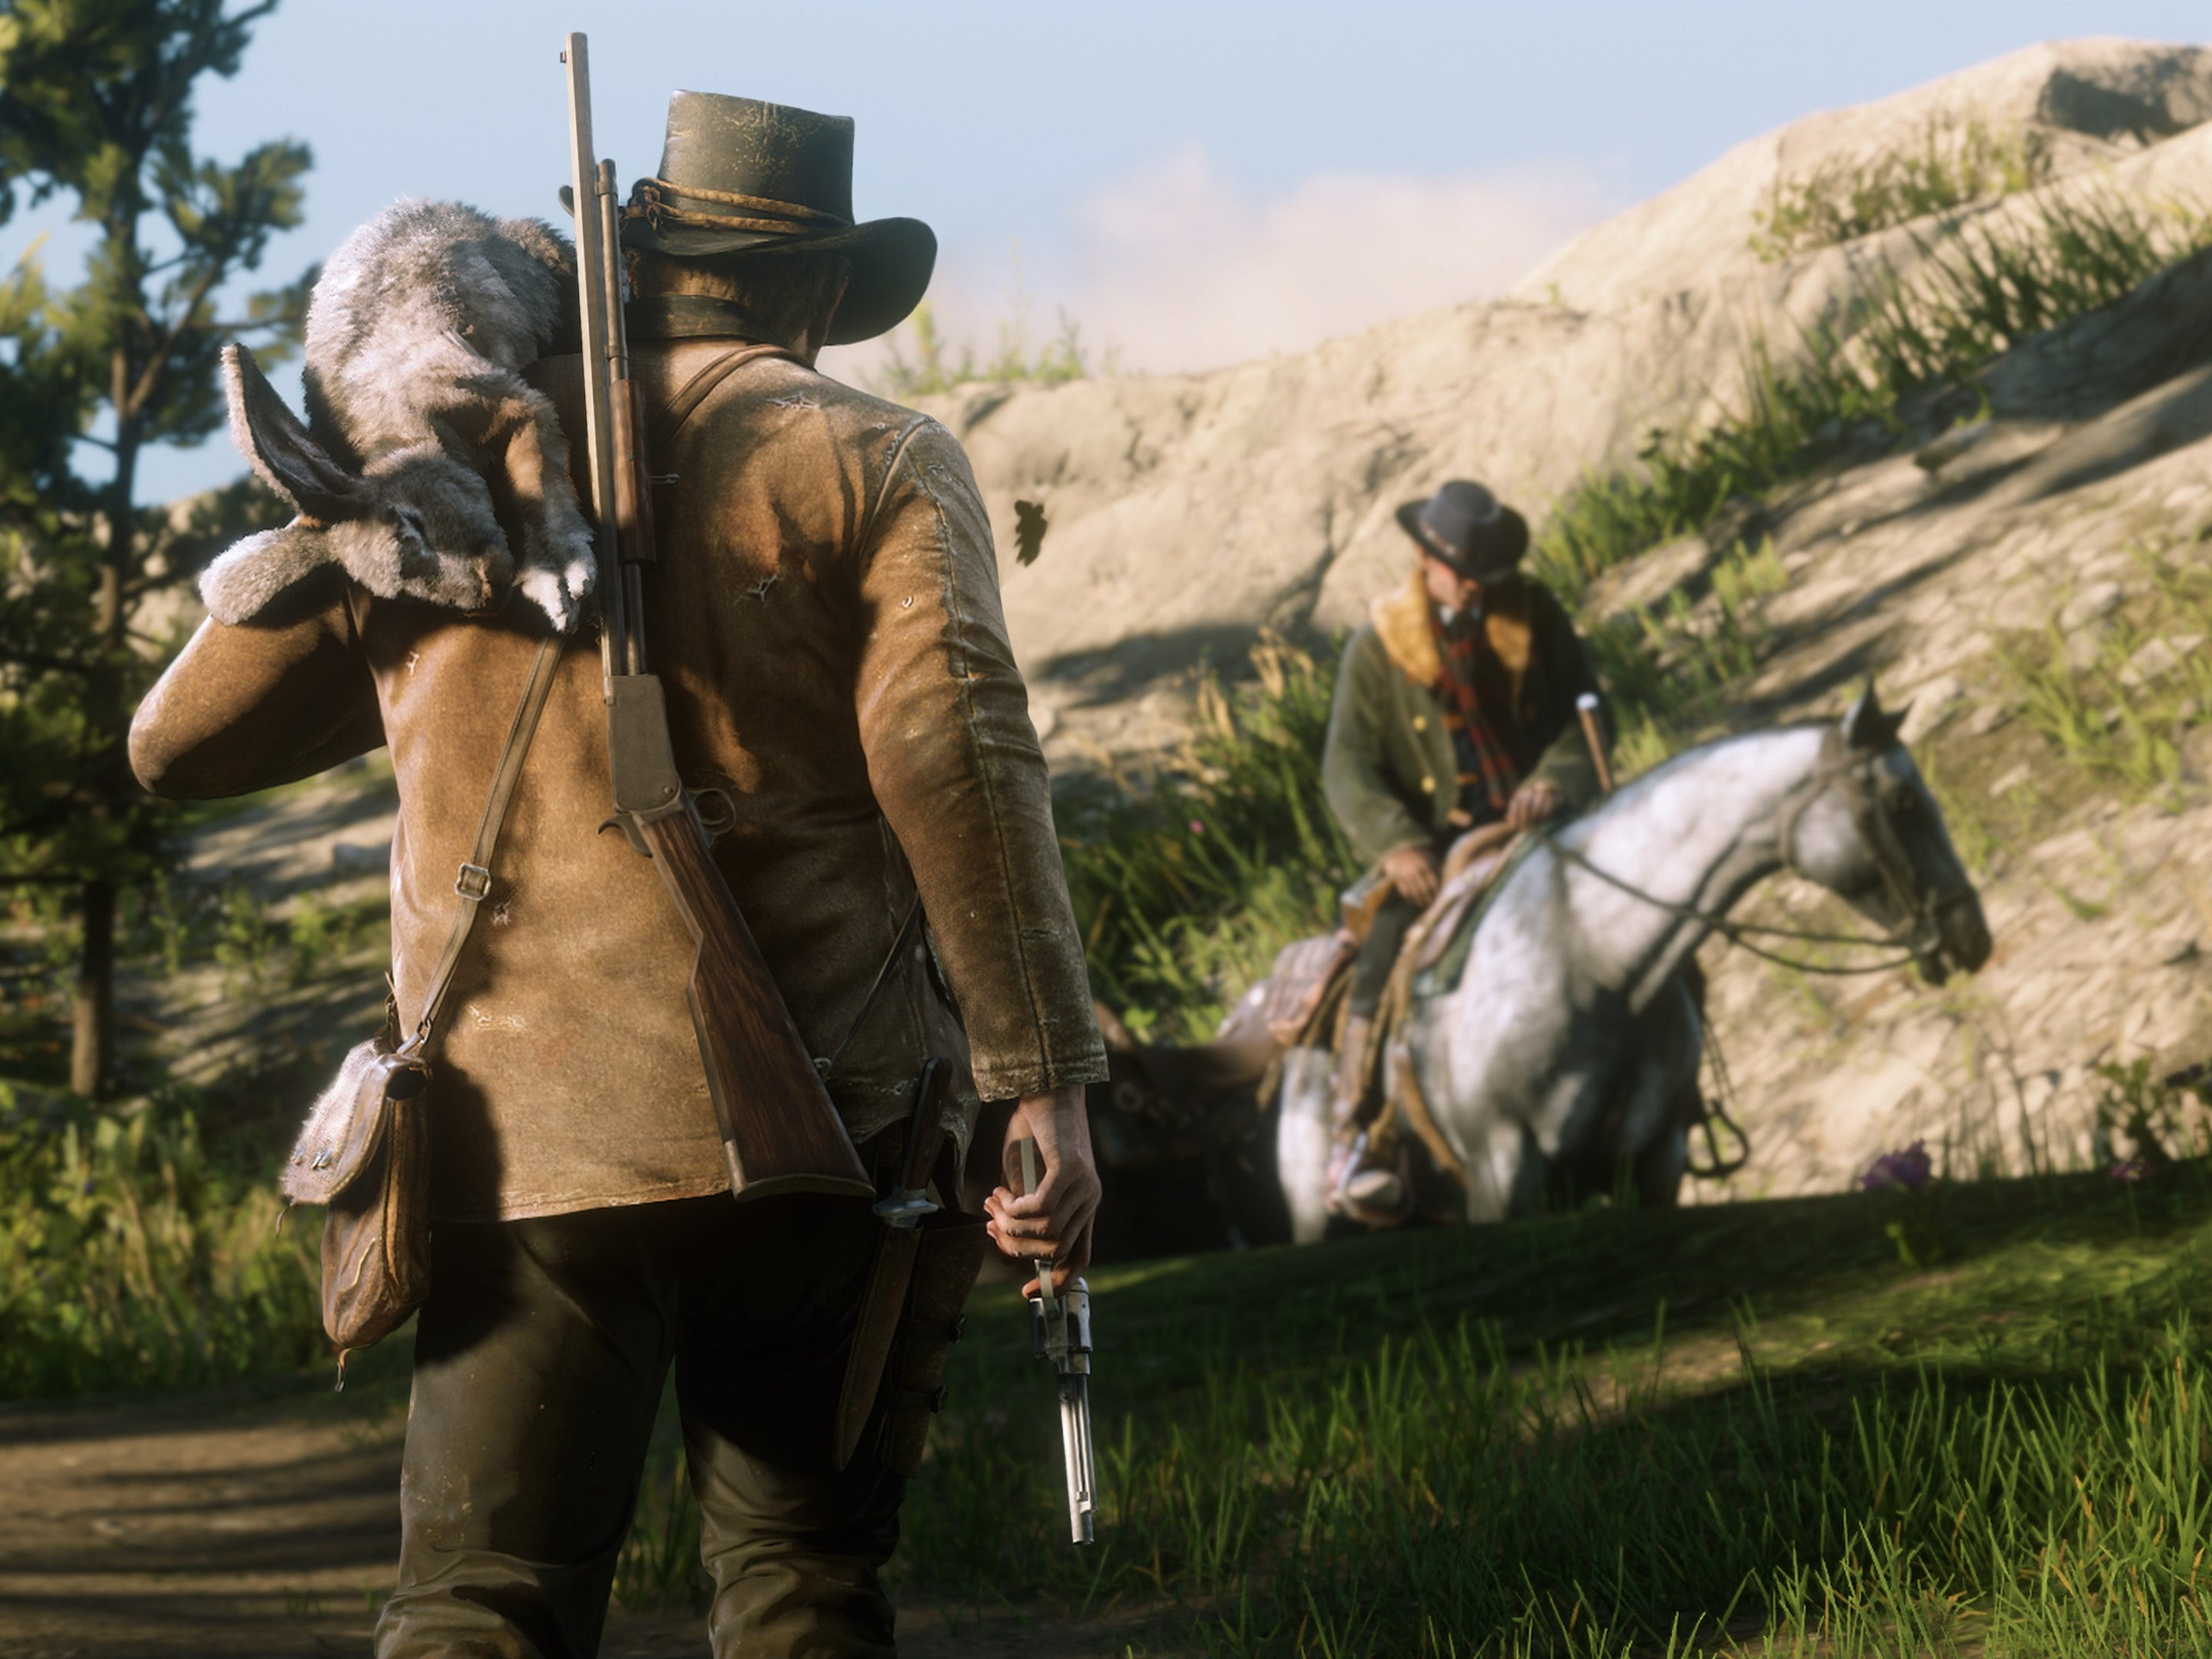 You can hunt wild game in 'Red Dead Redemption 2' and use your conquests to feed the gang and, with pelts, craft new items your character can use and wear.